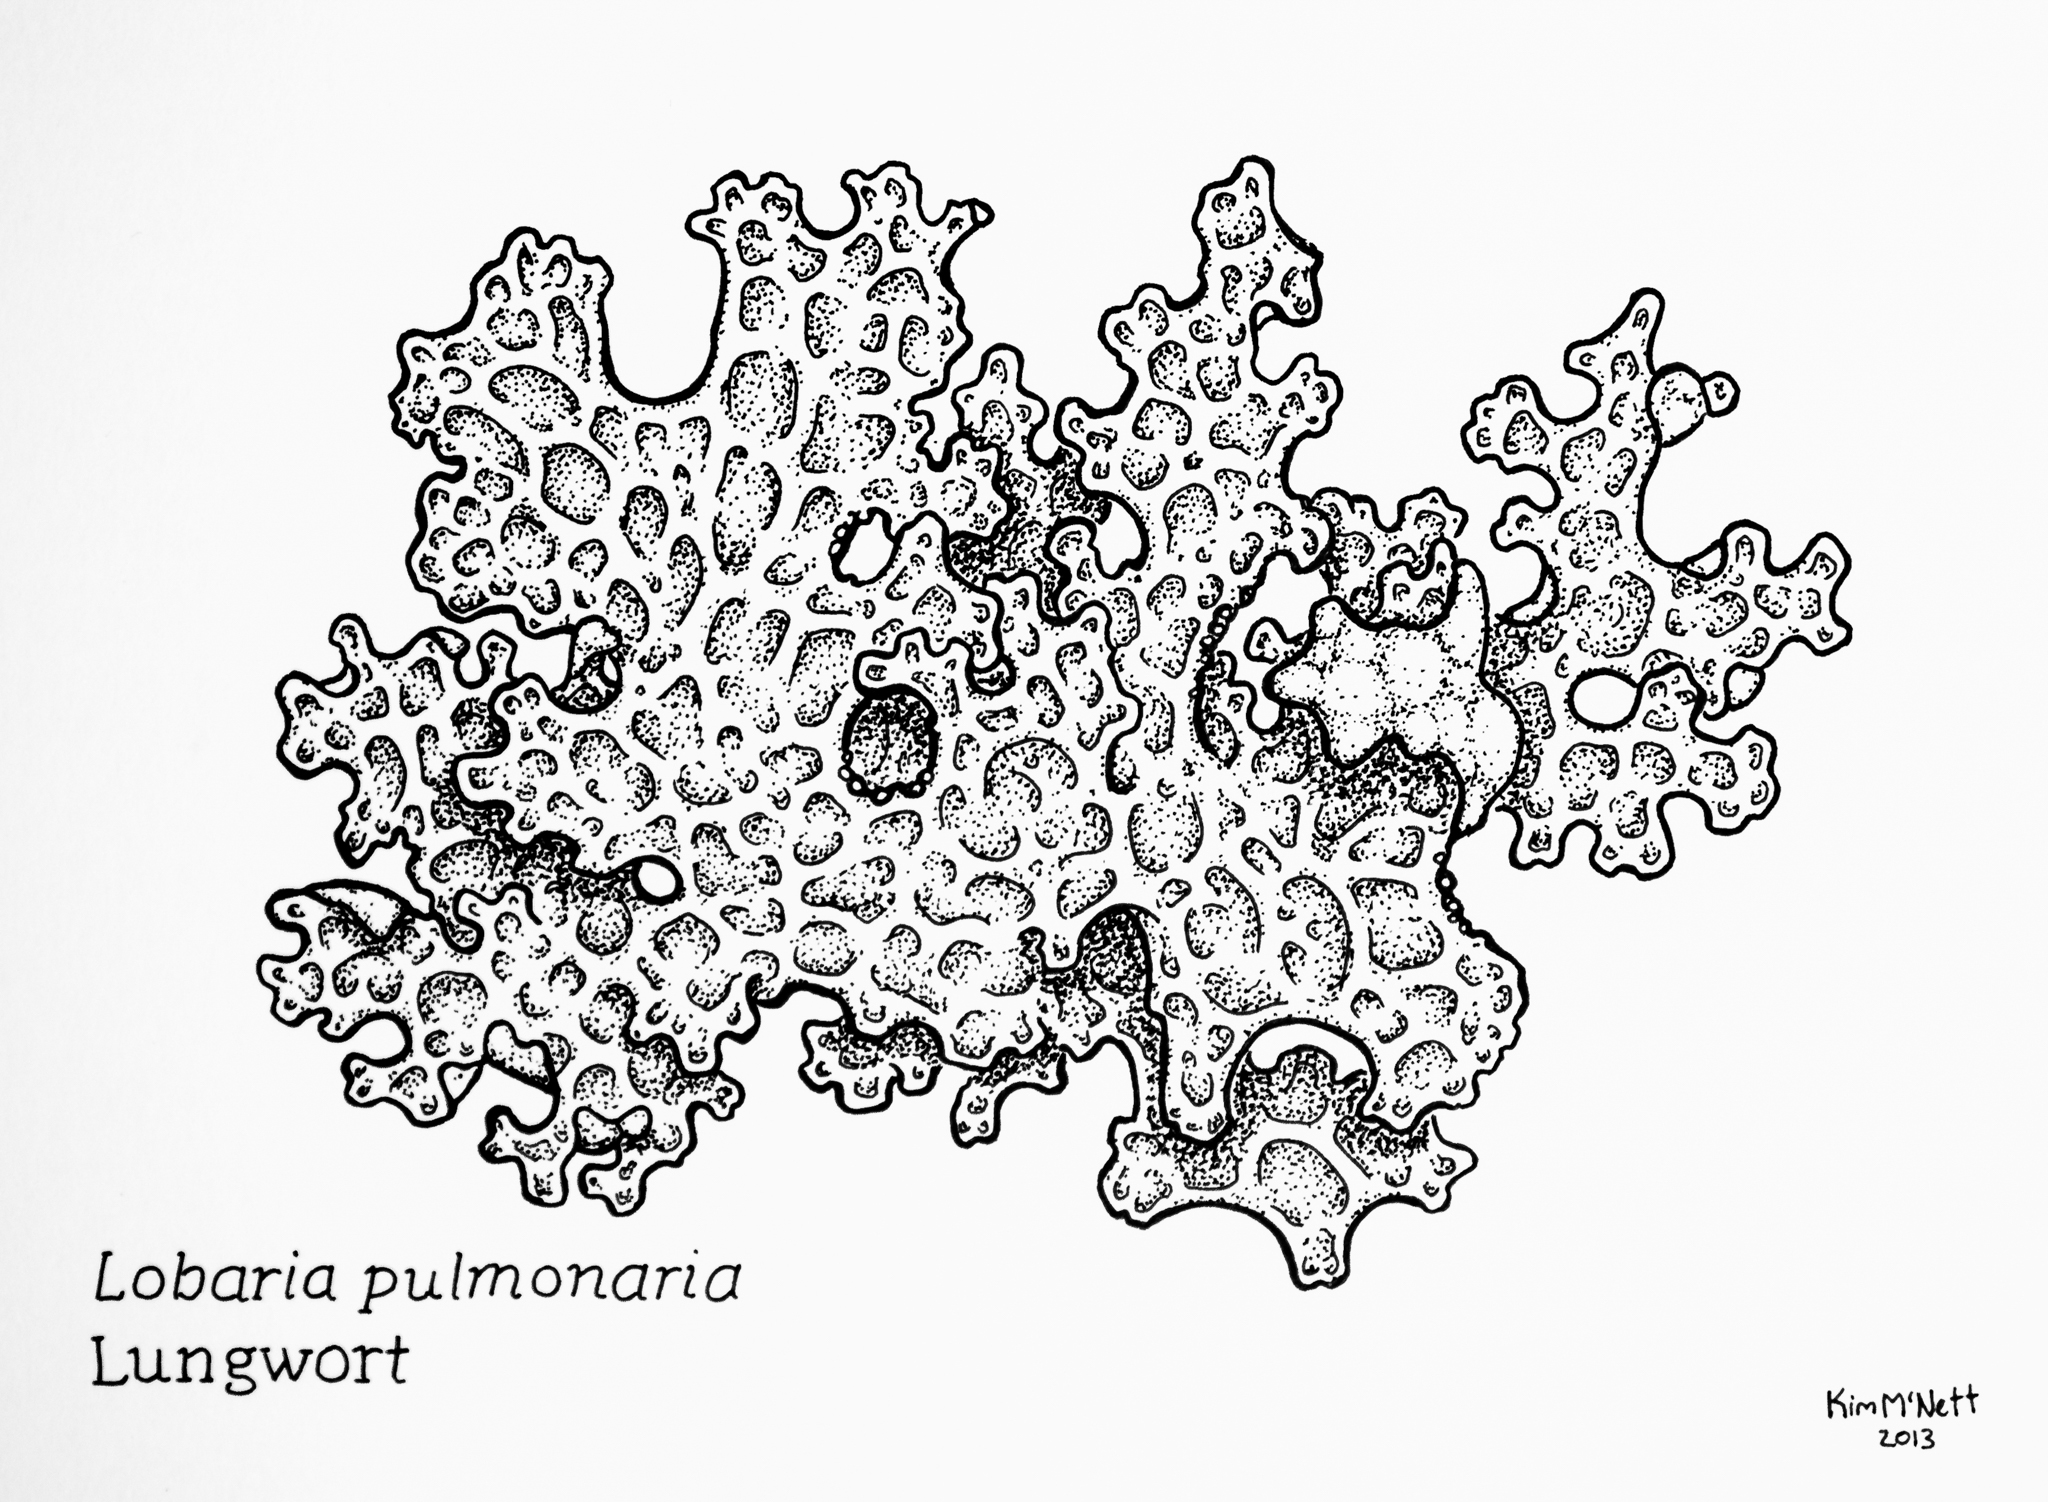 Lungwort Lobaria pulmonaria drawing